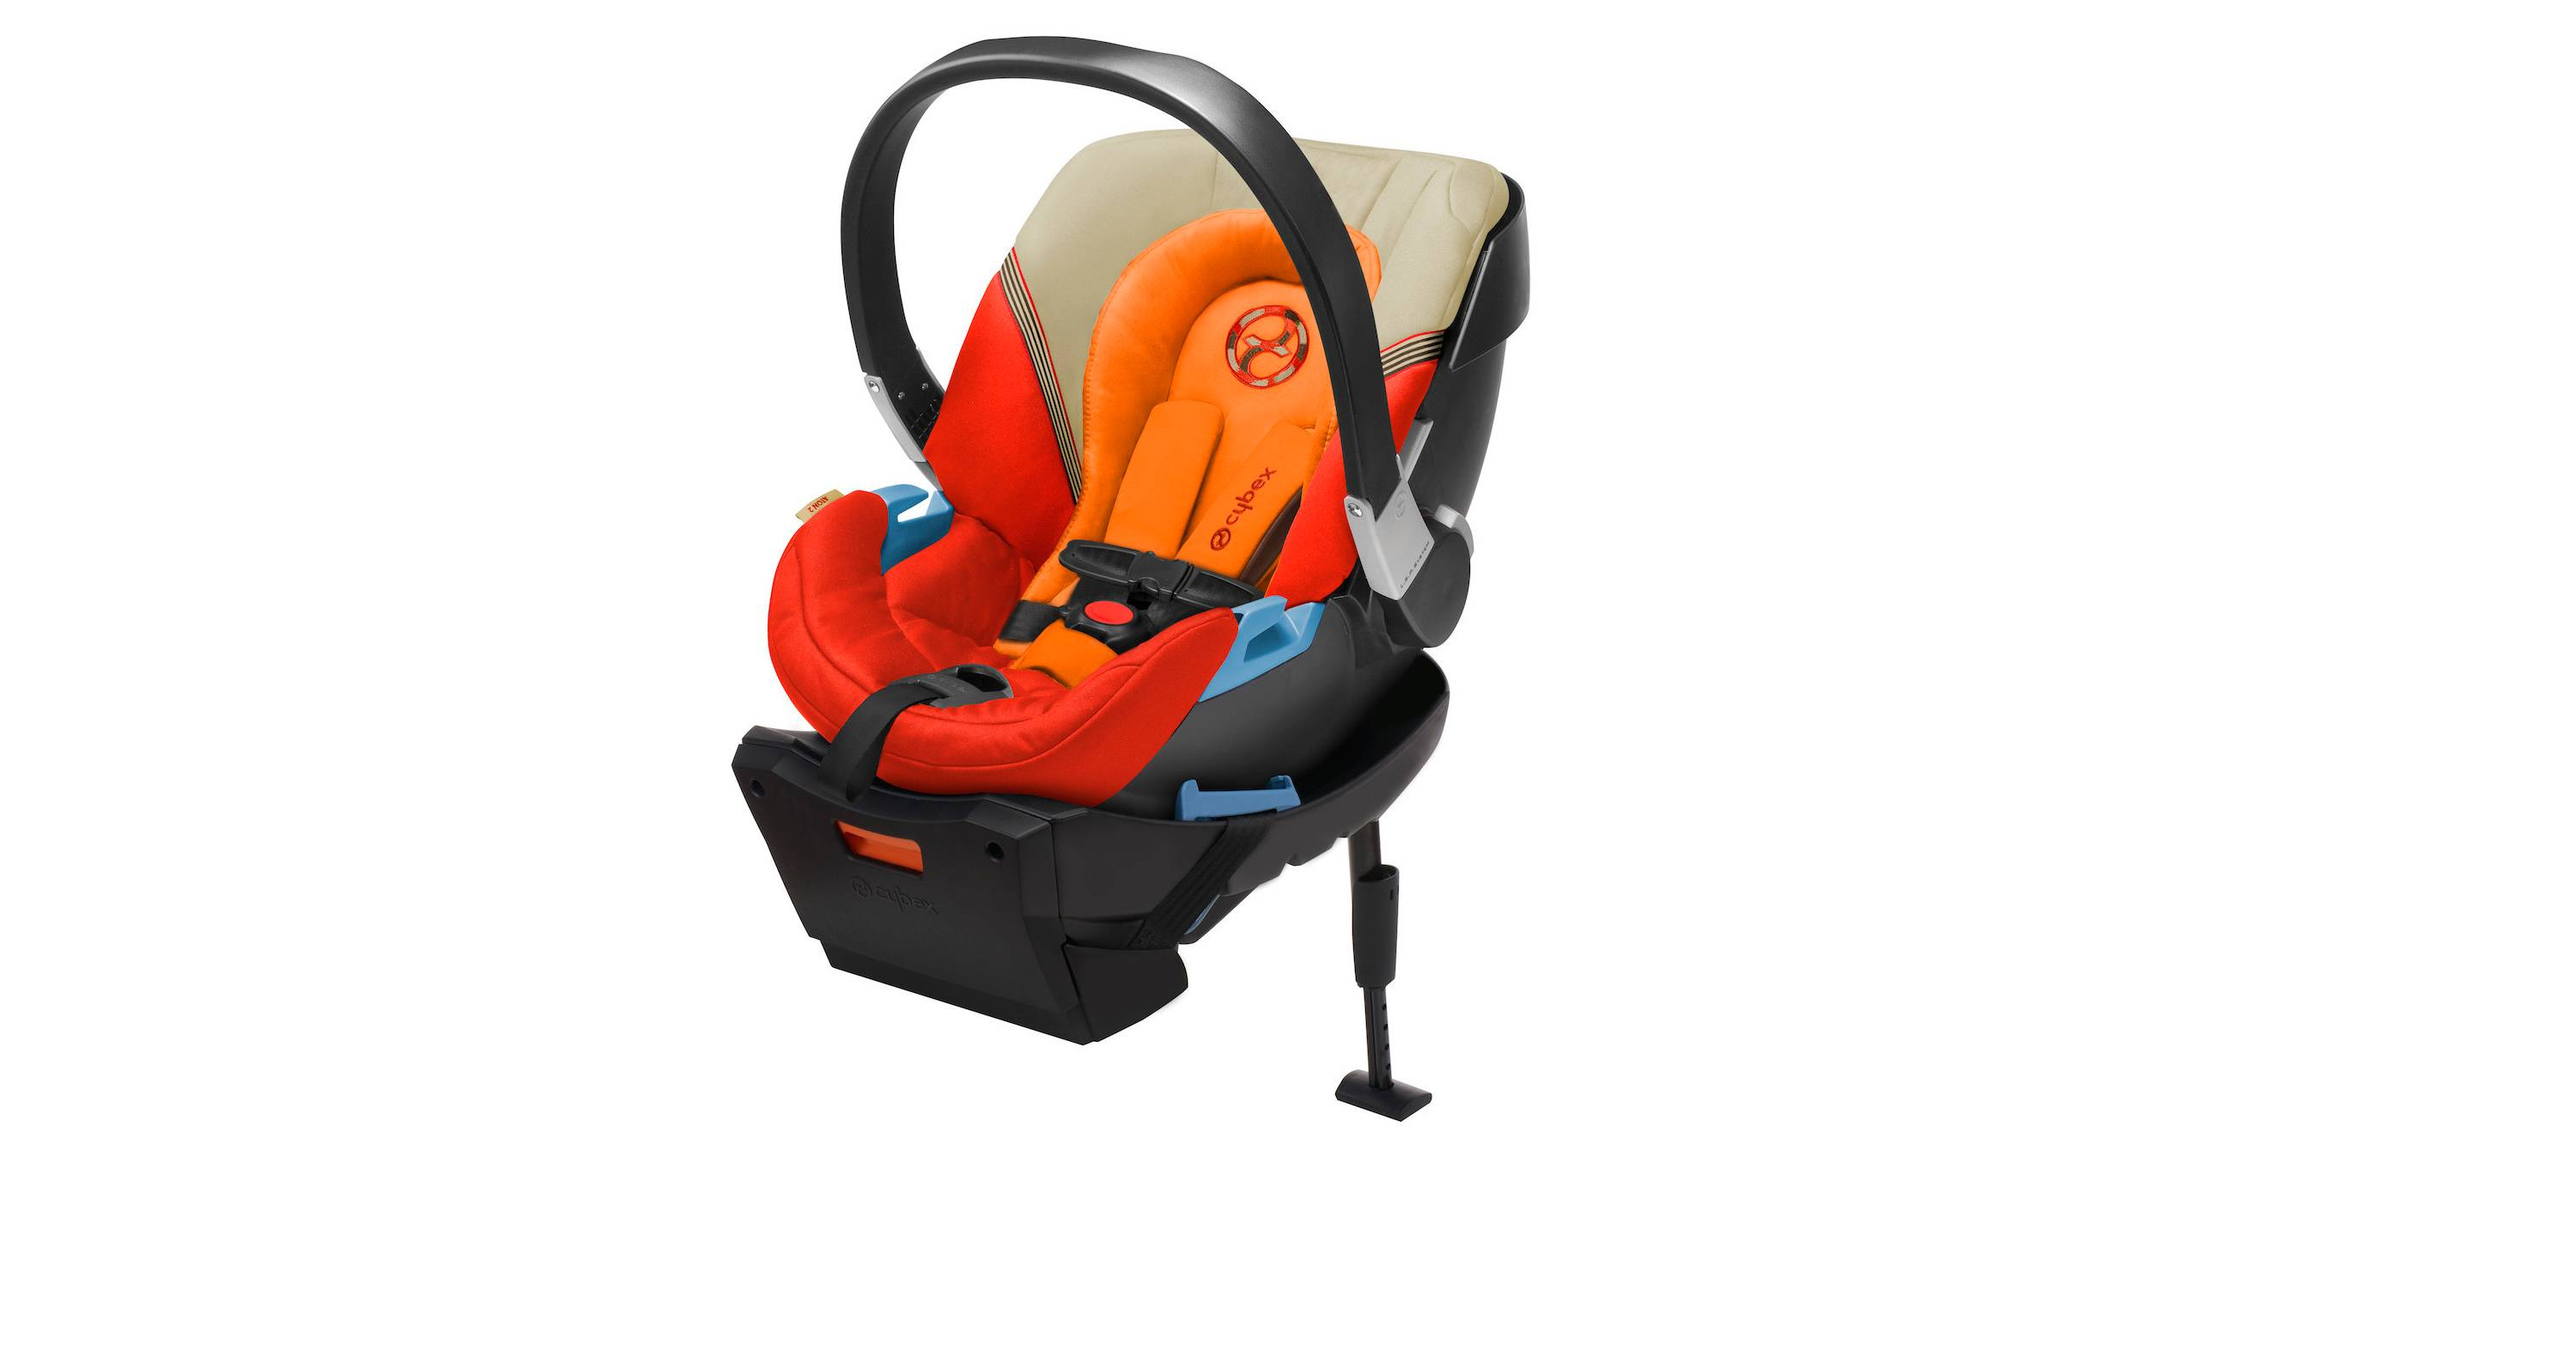 CYBEX Aton 2 Infant Car Seat In Orange For 130